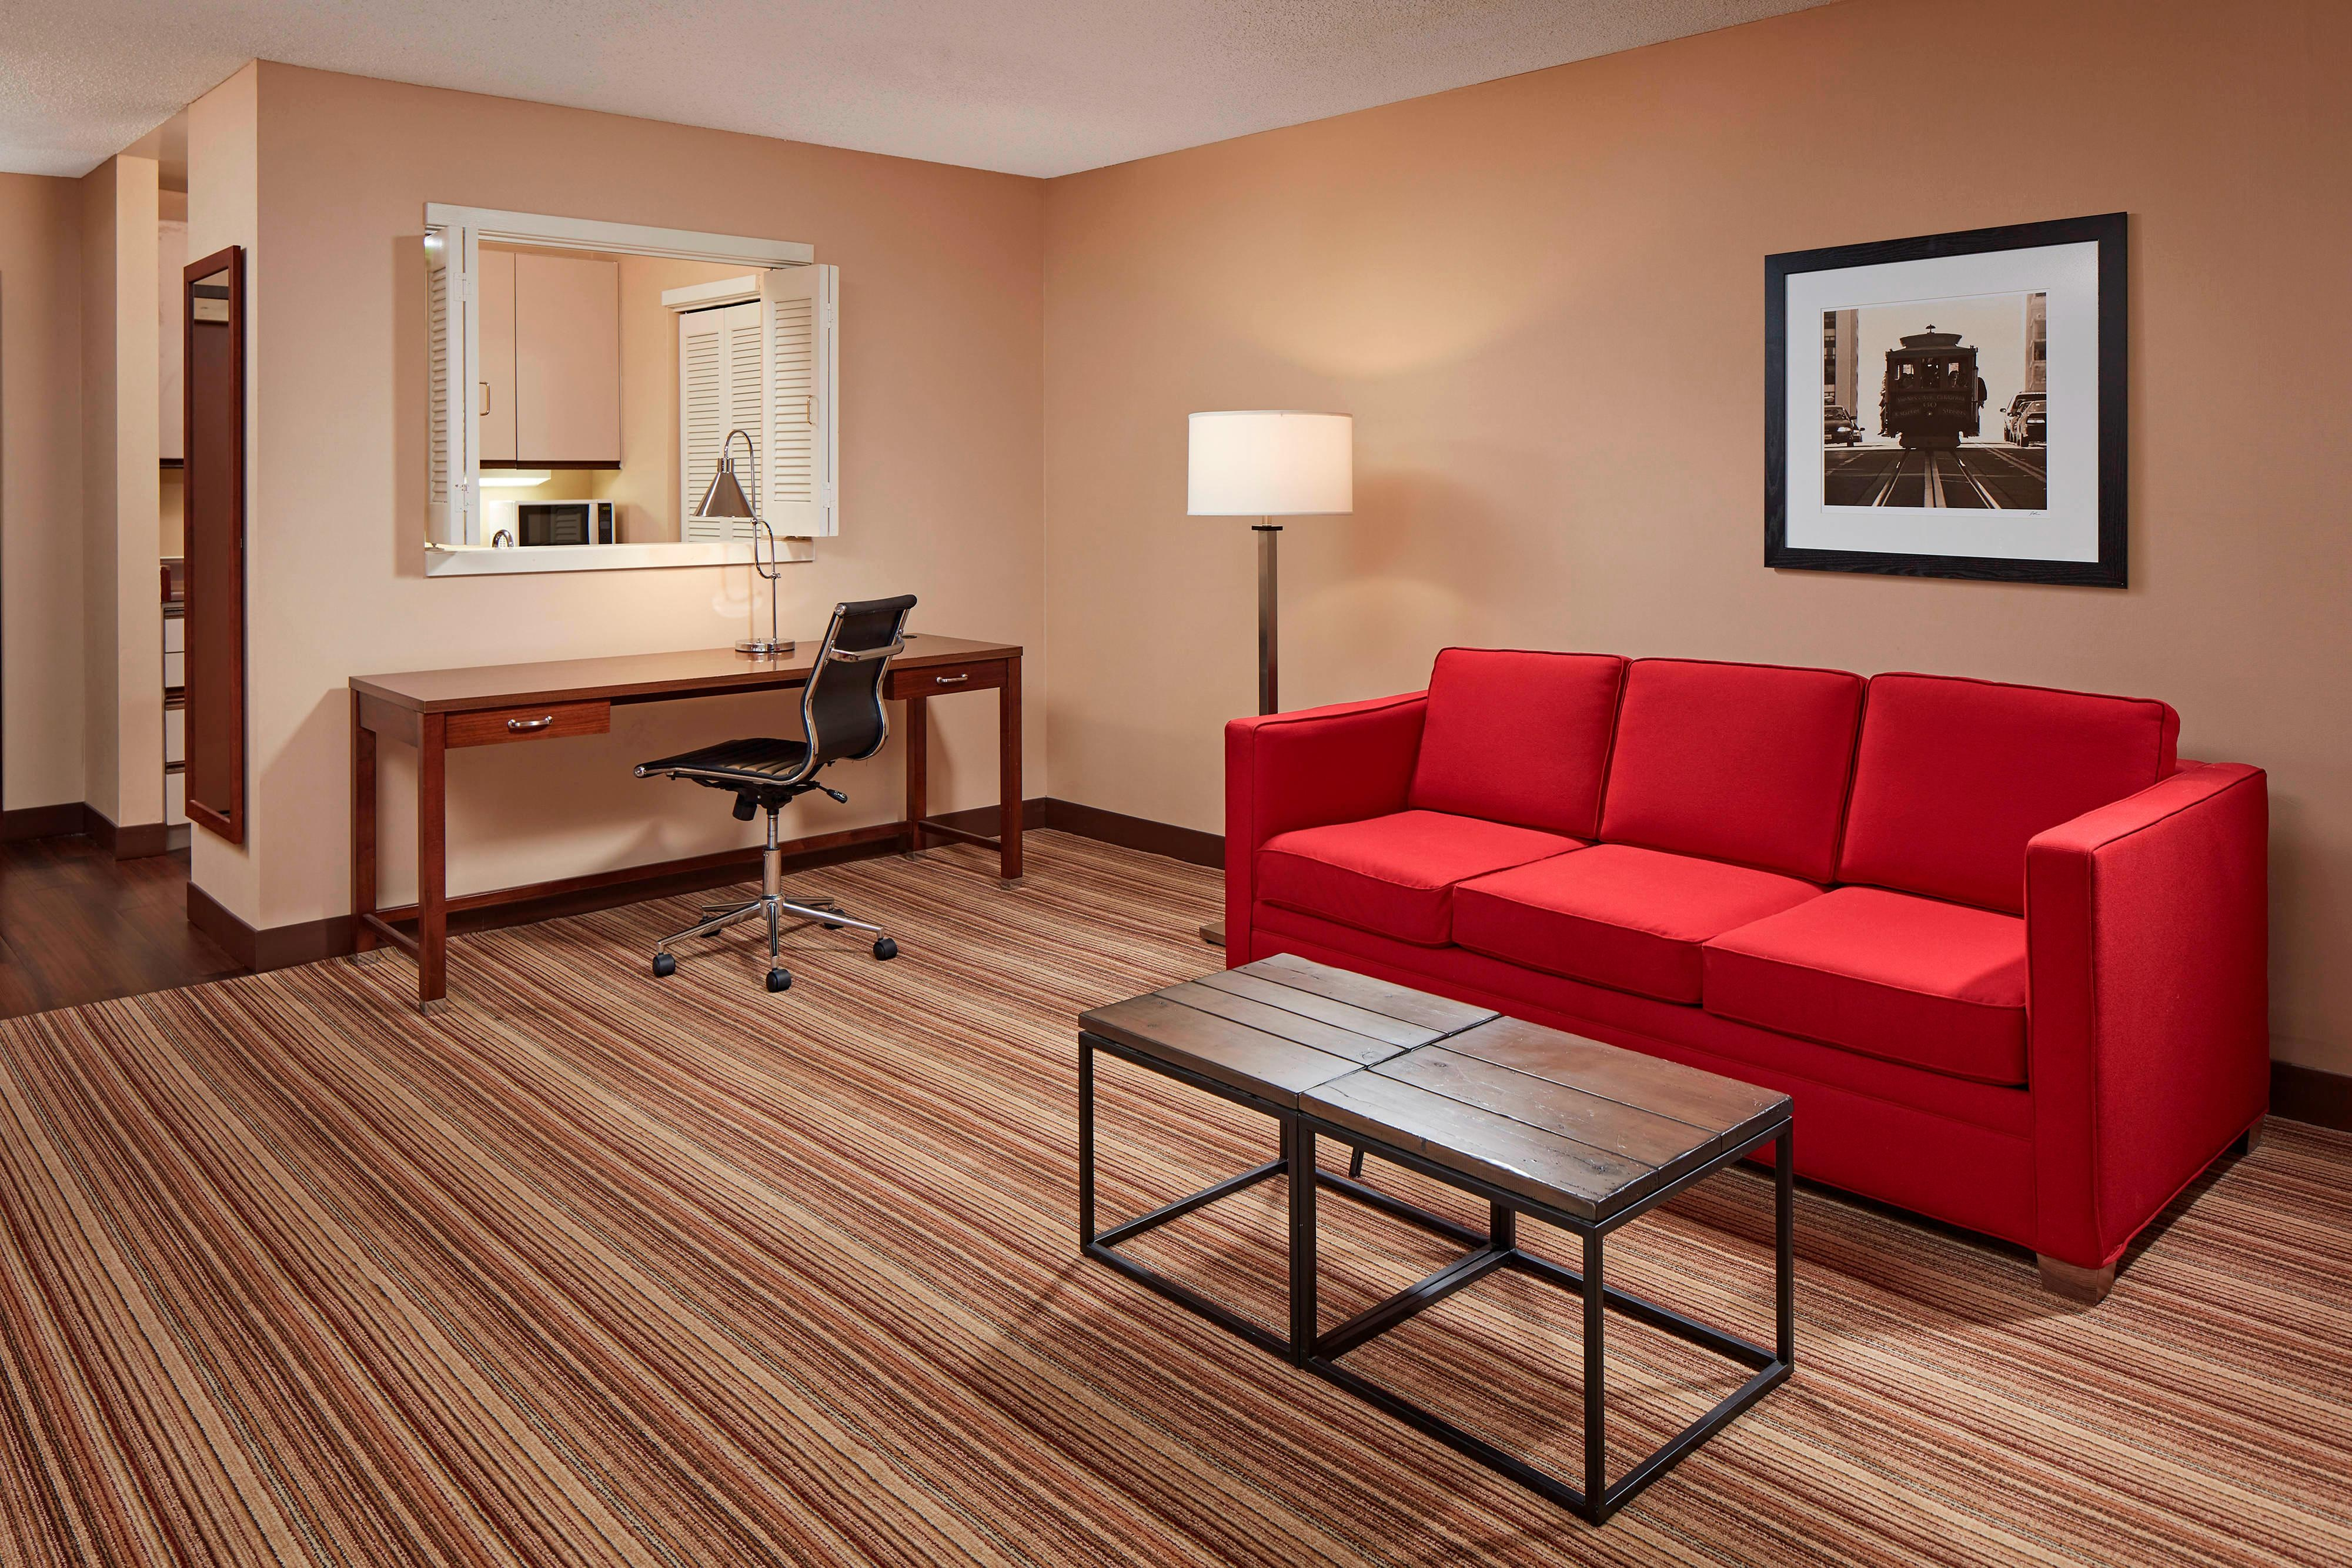 King Executive Room - Workspace